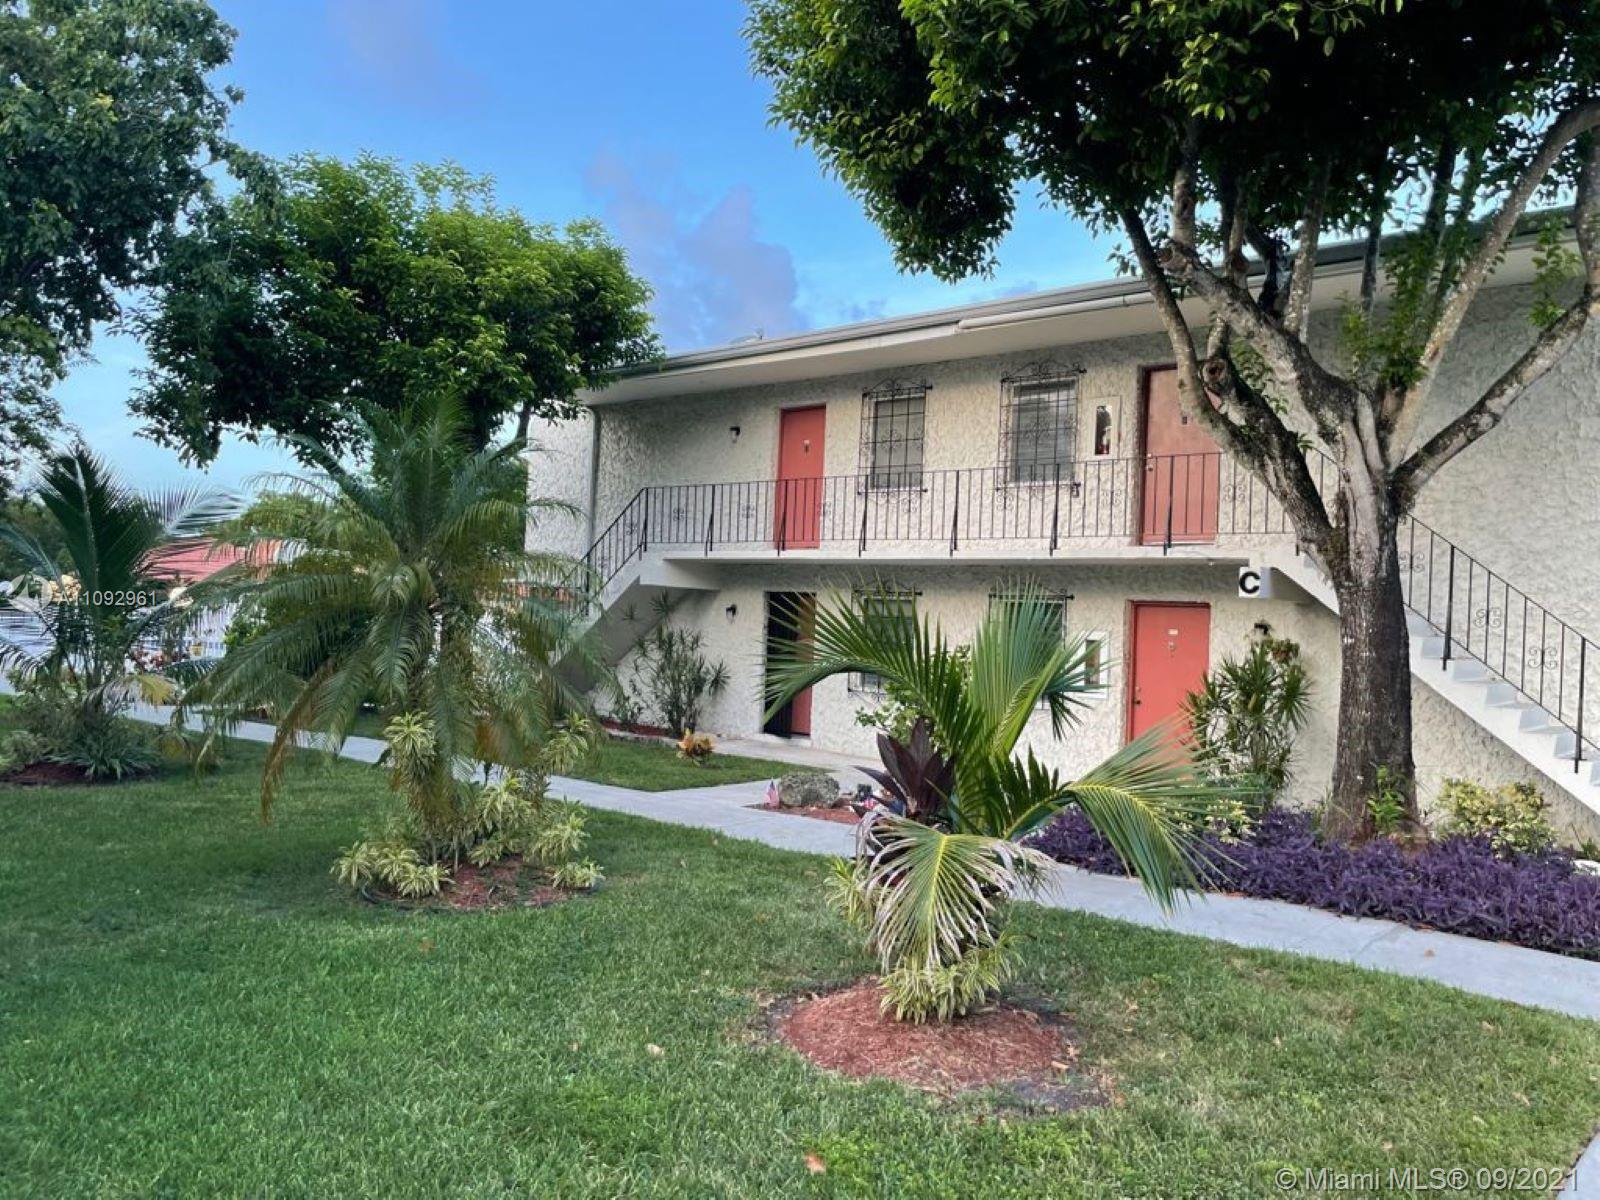 Be the first to enjoy this newly remodeled 1/1 unit in the secret treasure that is Casa Granada, a quiet garden condo community nearby all the action!  This second floor unit has a new kitchen with quartz countertops, bathroom with shower and laminate flooring throughout, ceiling fans and central air. Enjoy your peace while sitting in the large balcony.  The community offers a pool and laundry facilities as well as outdoor sitting areas.  If you want to live in a quiet community yet be within walking distance of shopping, this is the place for you!